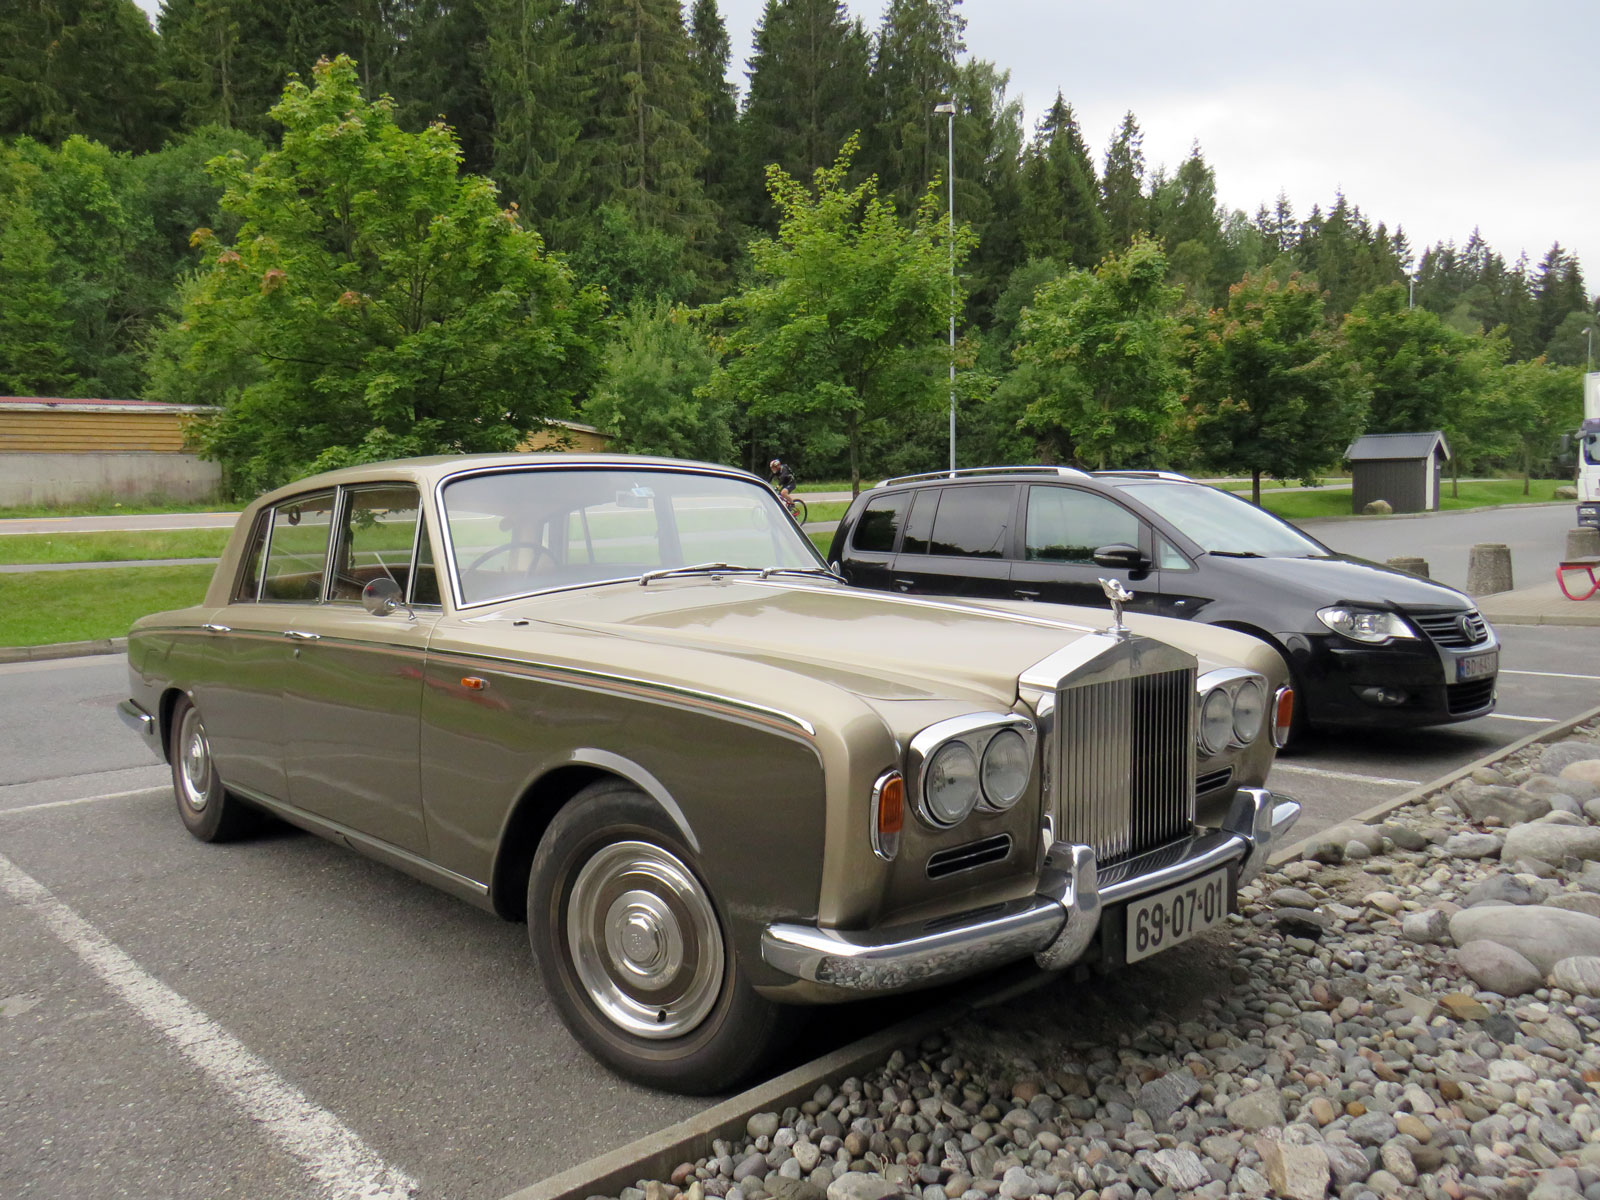 1969 Rolls-Royce Silver Shadow British luxury car Norway